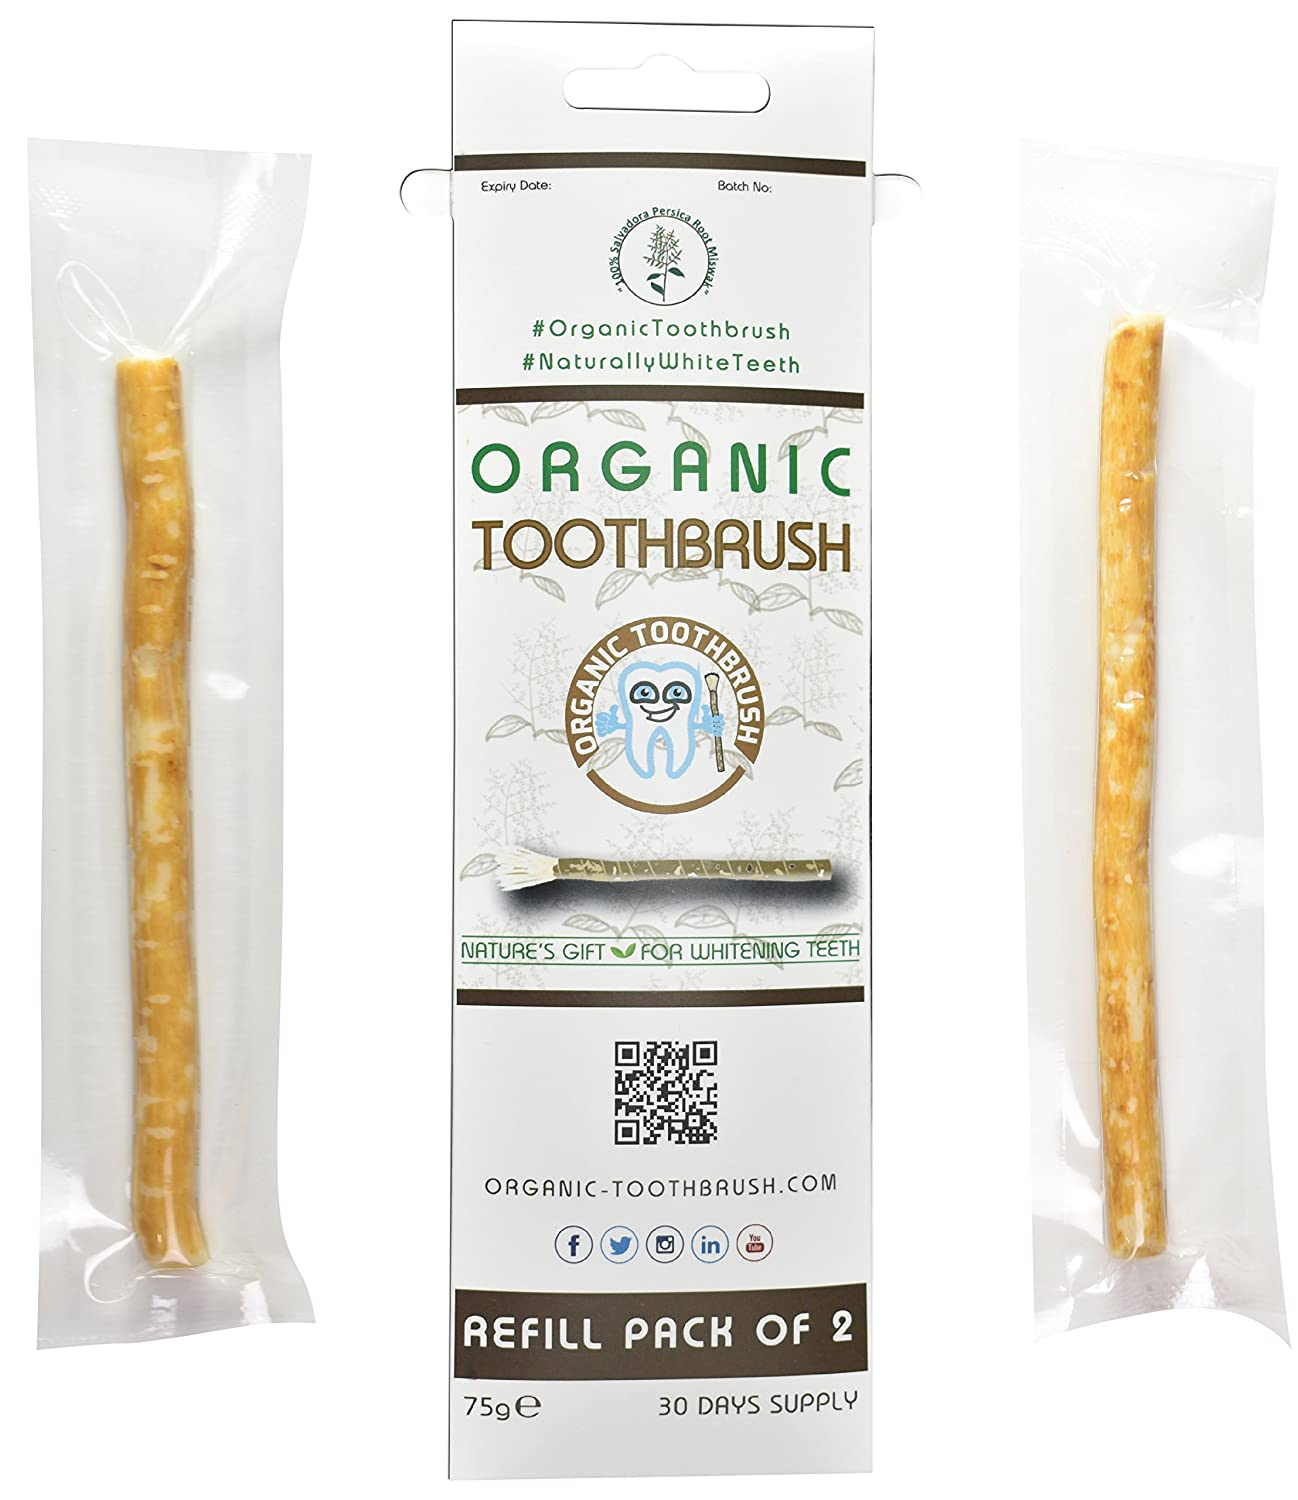 The Organic Toothbrush (Refill Pack of 2 Miswak Sticks): Amazon.es: Salud y cuidado personal